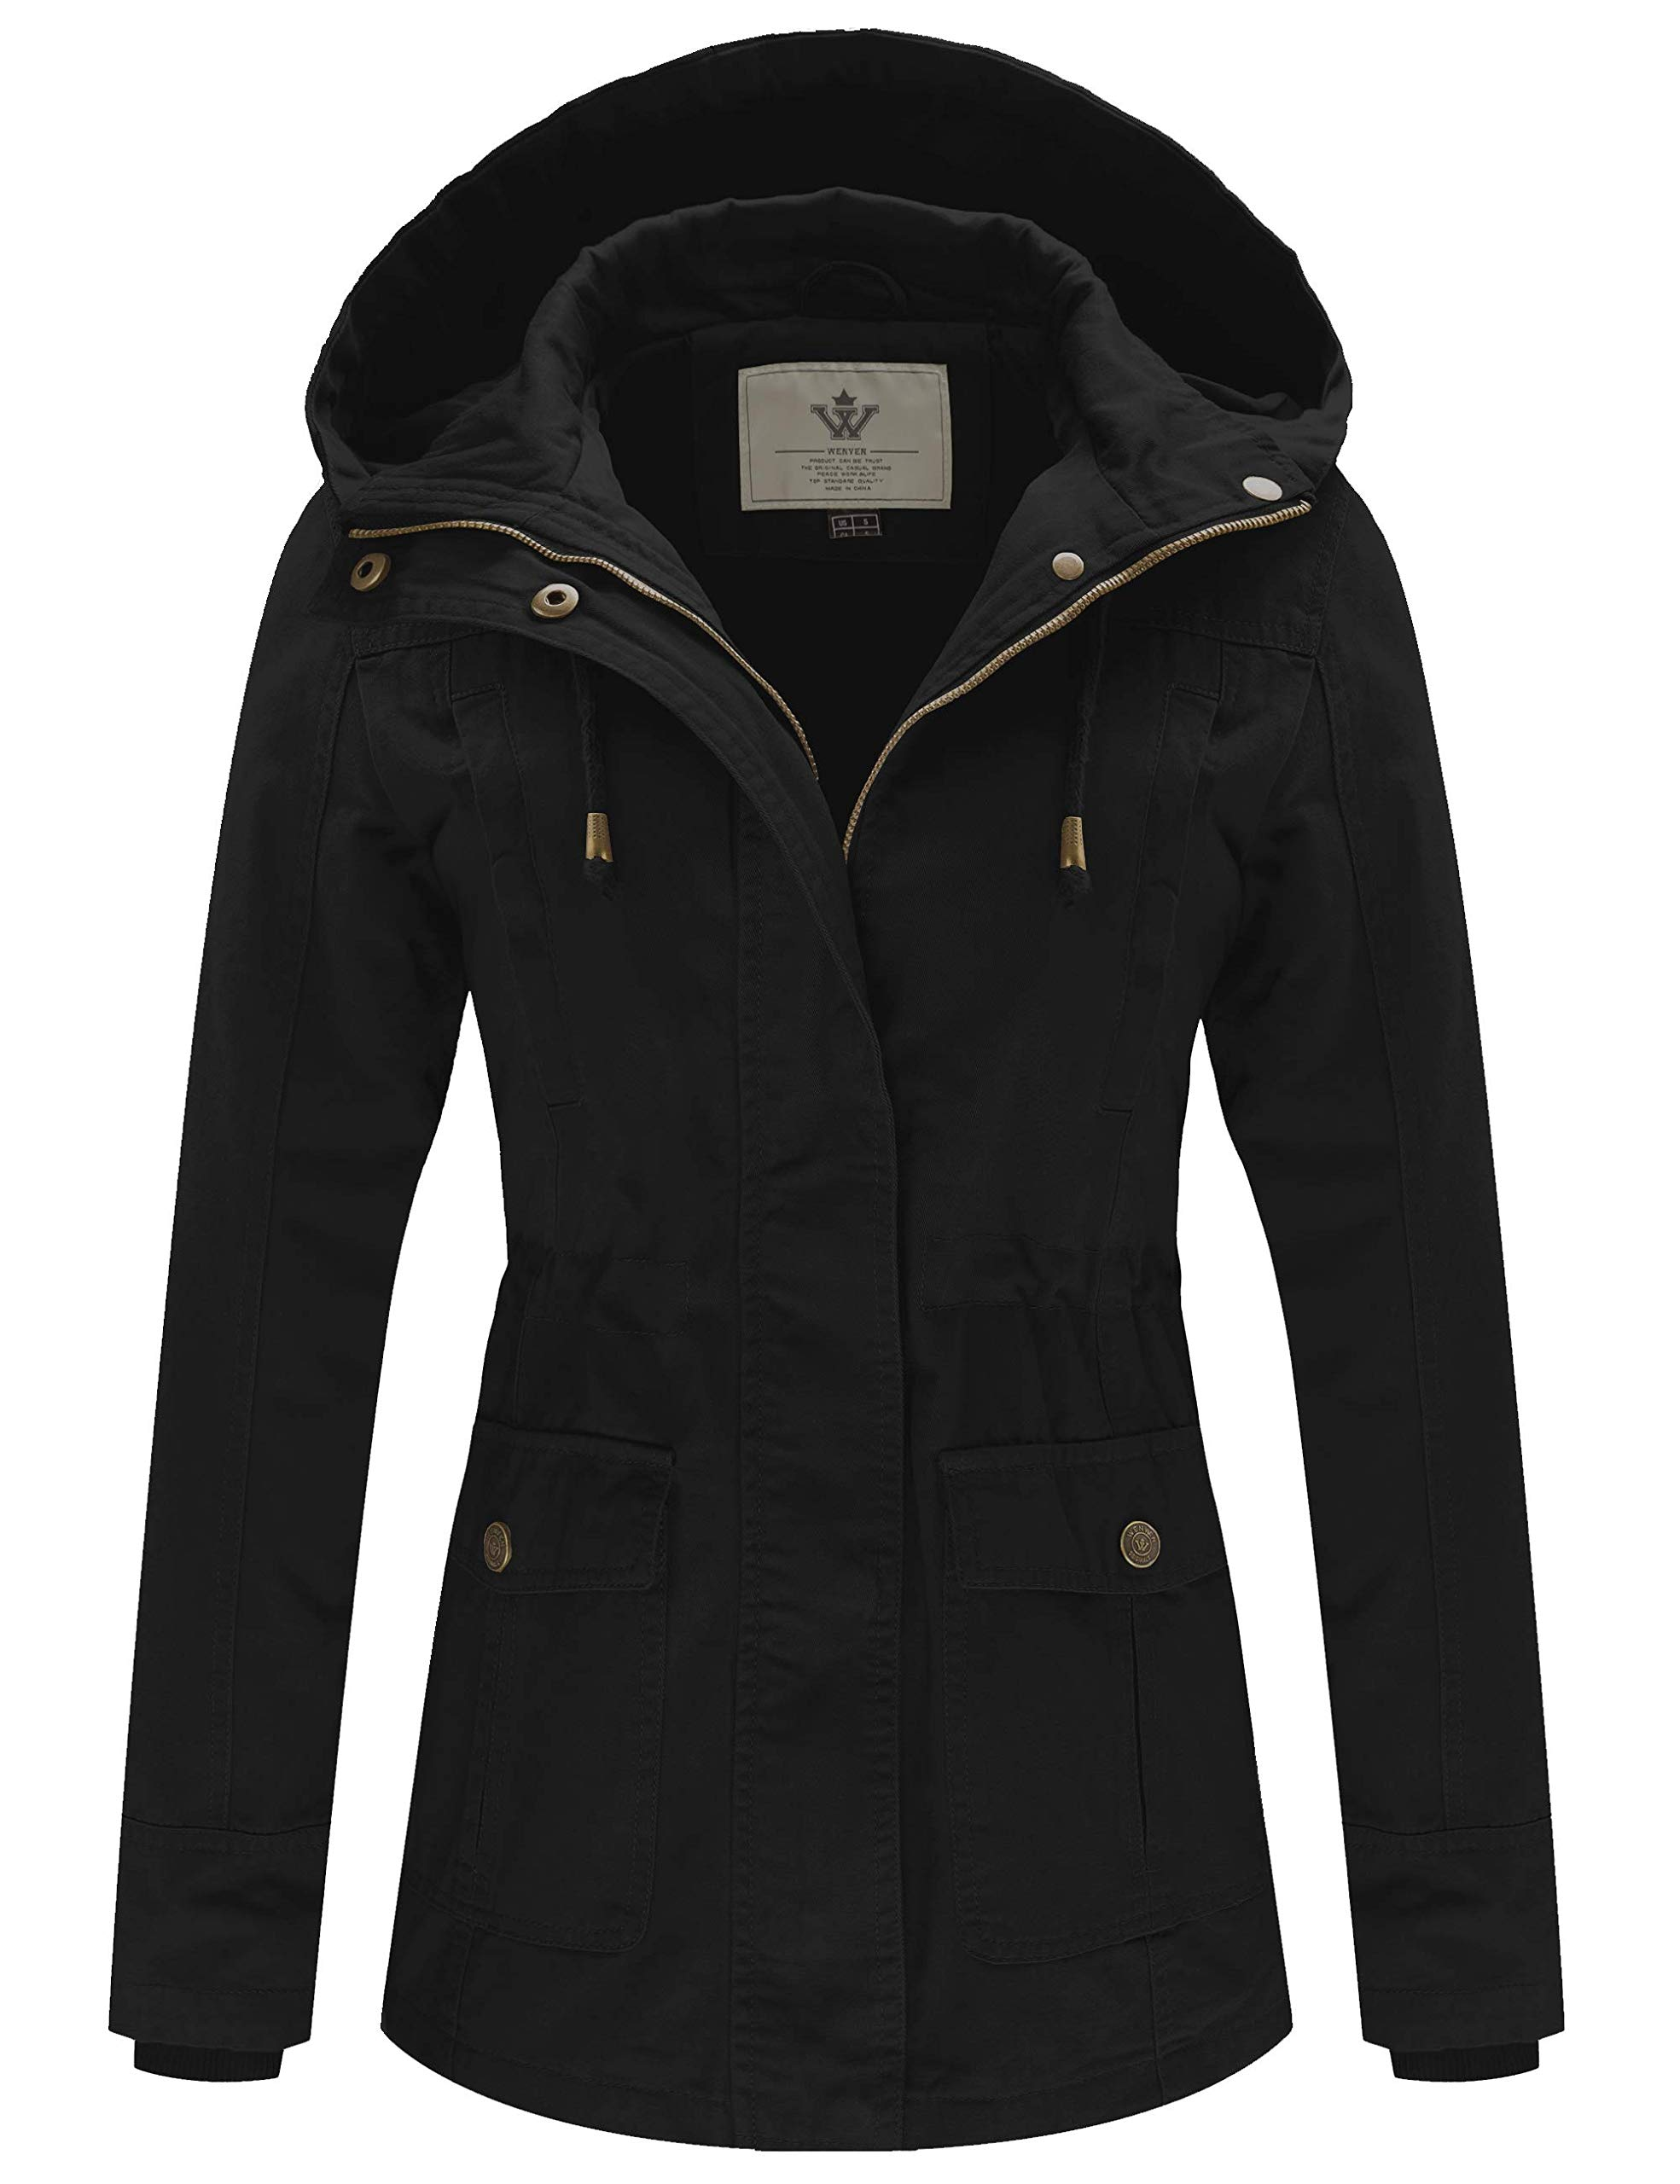 WenVen Women's Spring Cotton Military Coat Anorak Hooded Jacket(Black, L) by WenVen